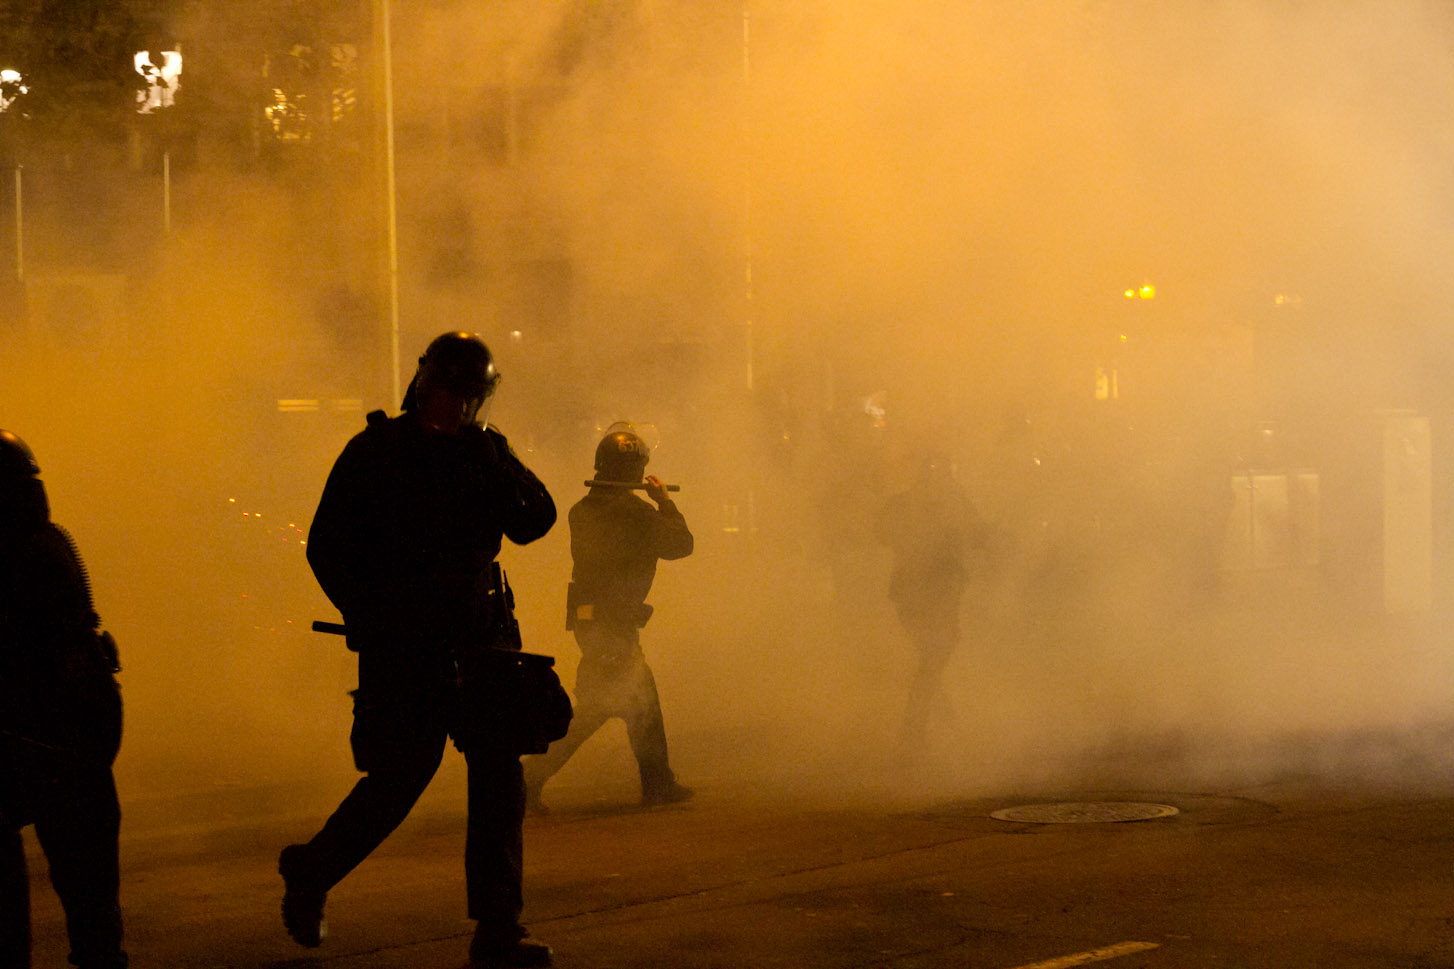 occupy-oakland-protest-tear-gas-jpdobrin-03.jpg